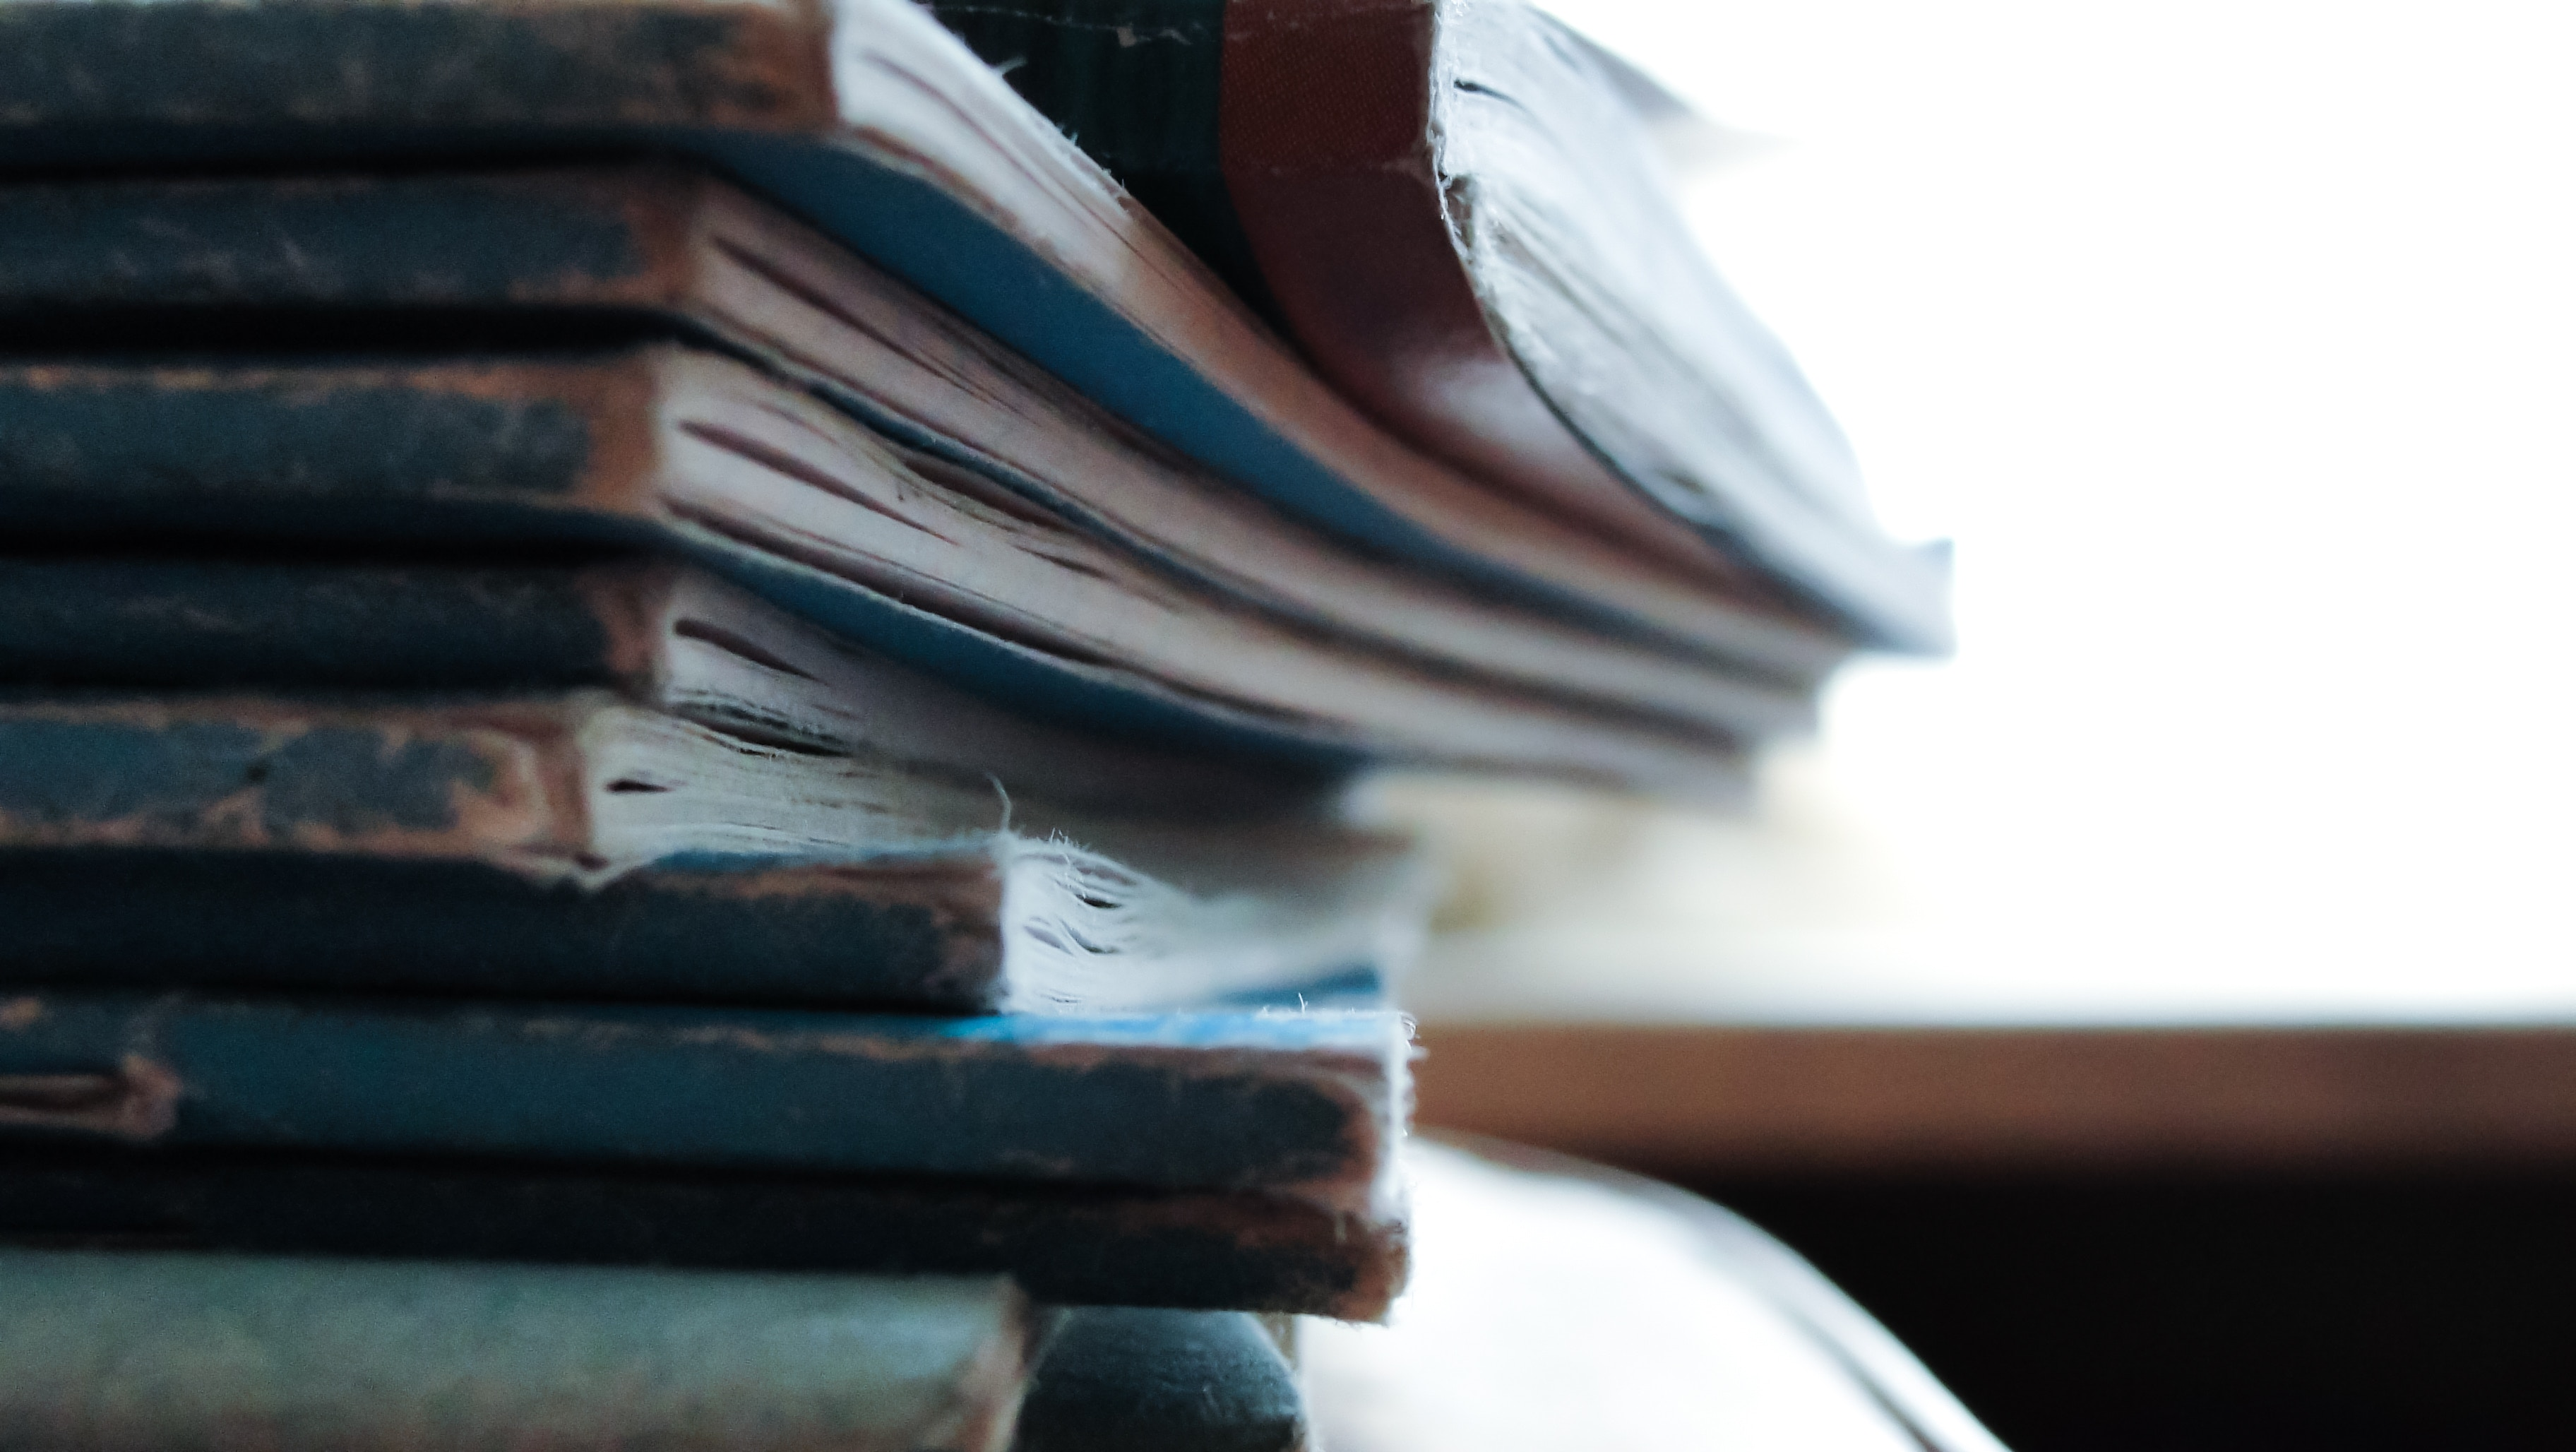 Piles of writers Notebooks